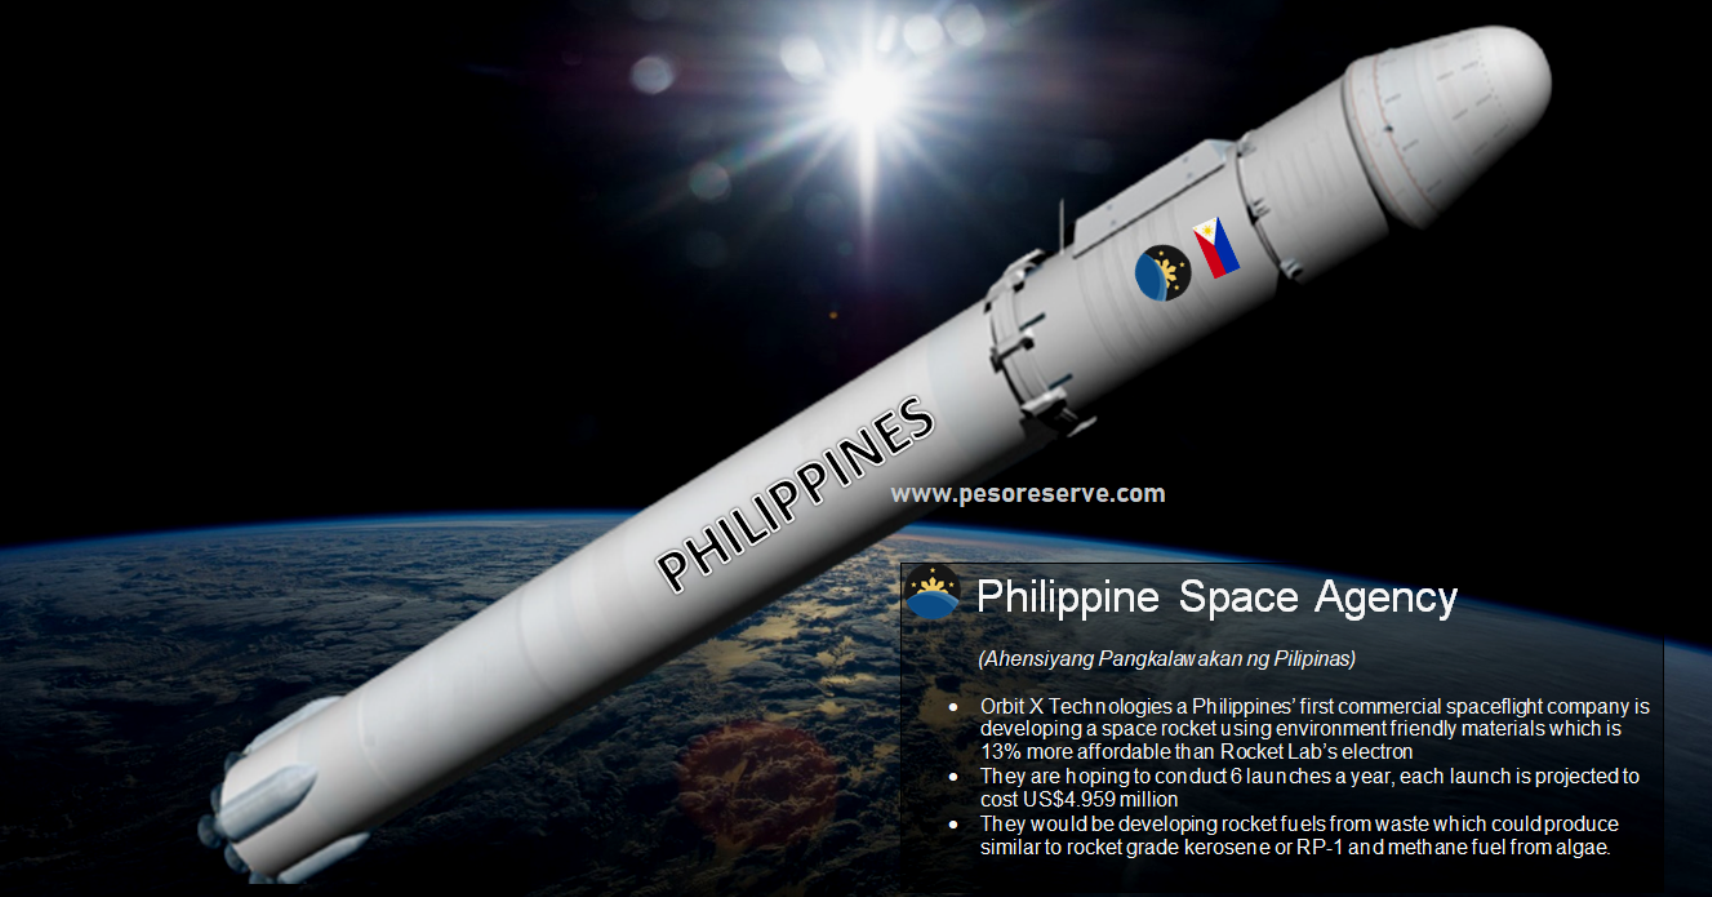 OrbitX started the developing a Space Rocket with the Philippines' Space Agency